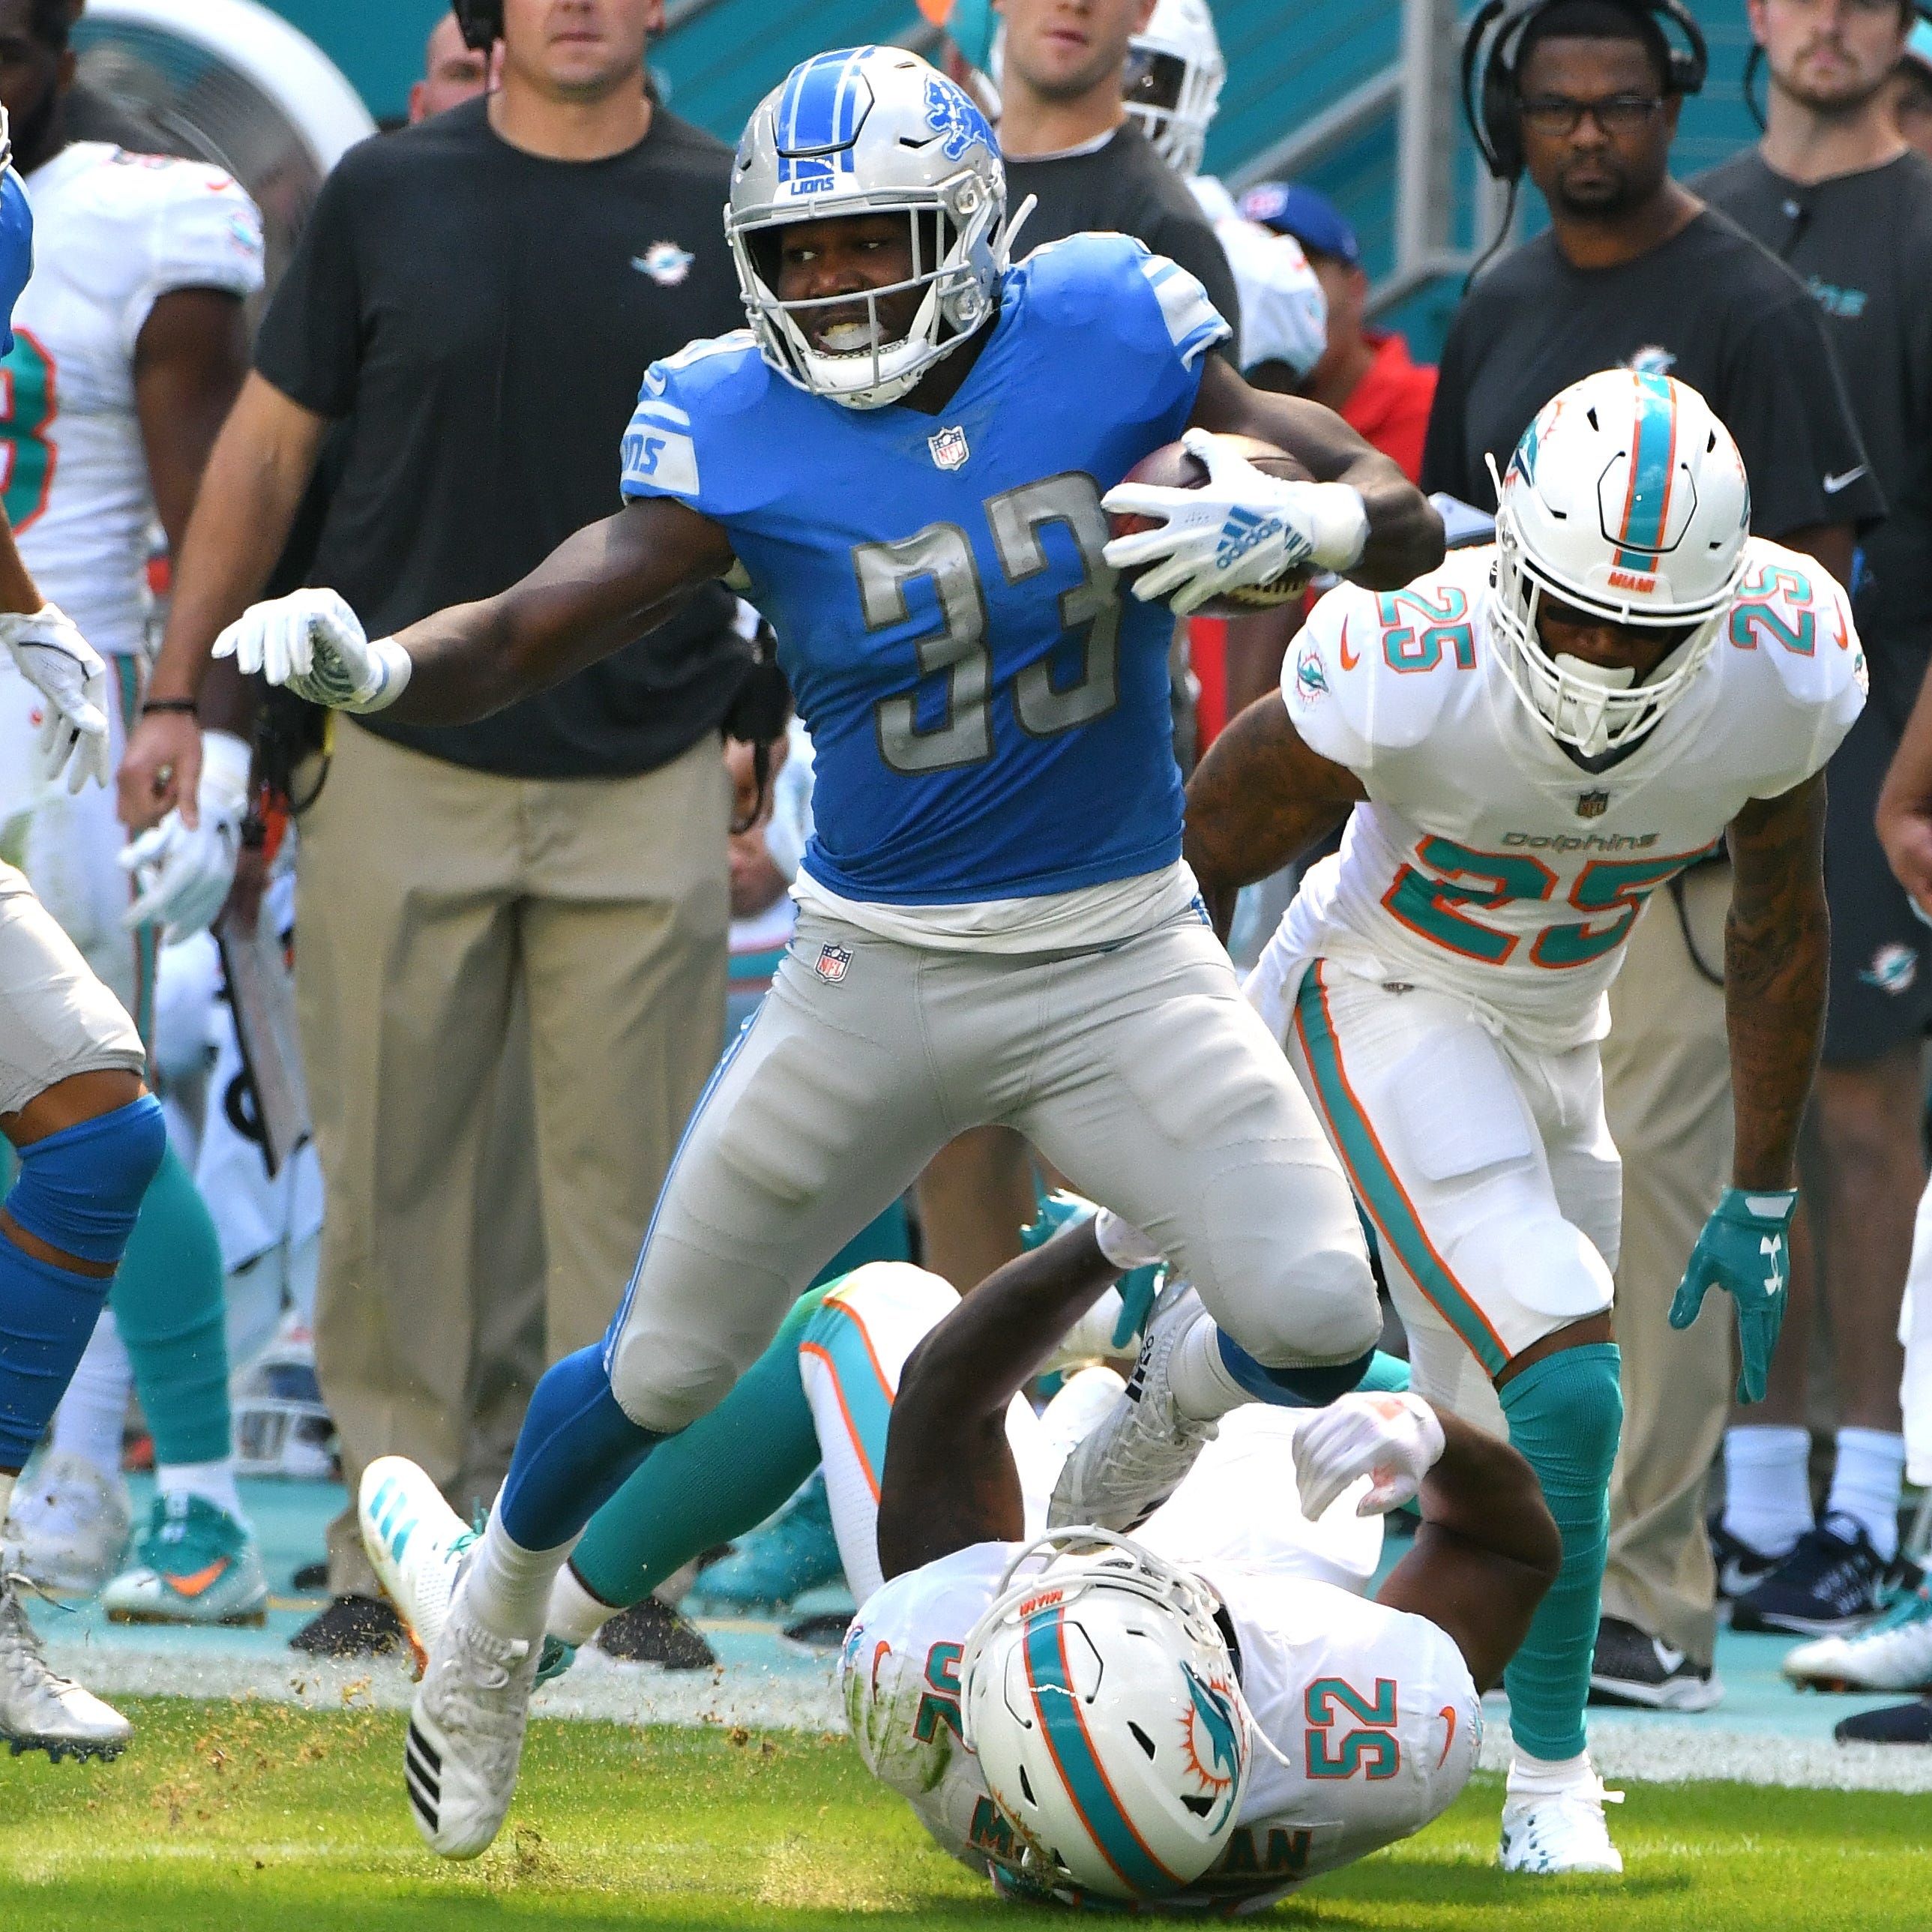 Kerryon Johnson pursues McCaffrey-like impact in Lions' offense